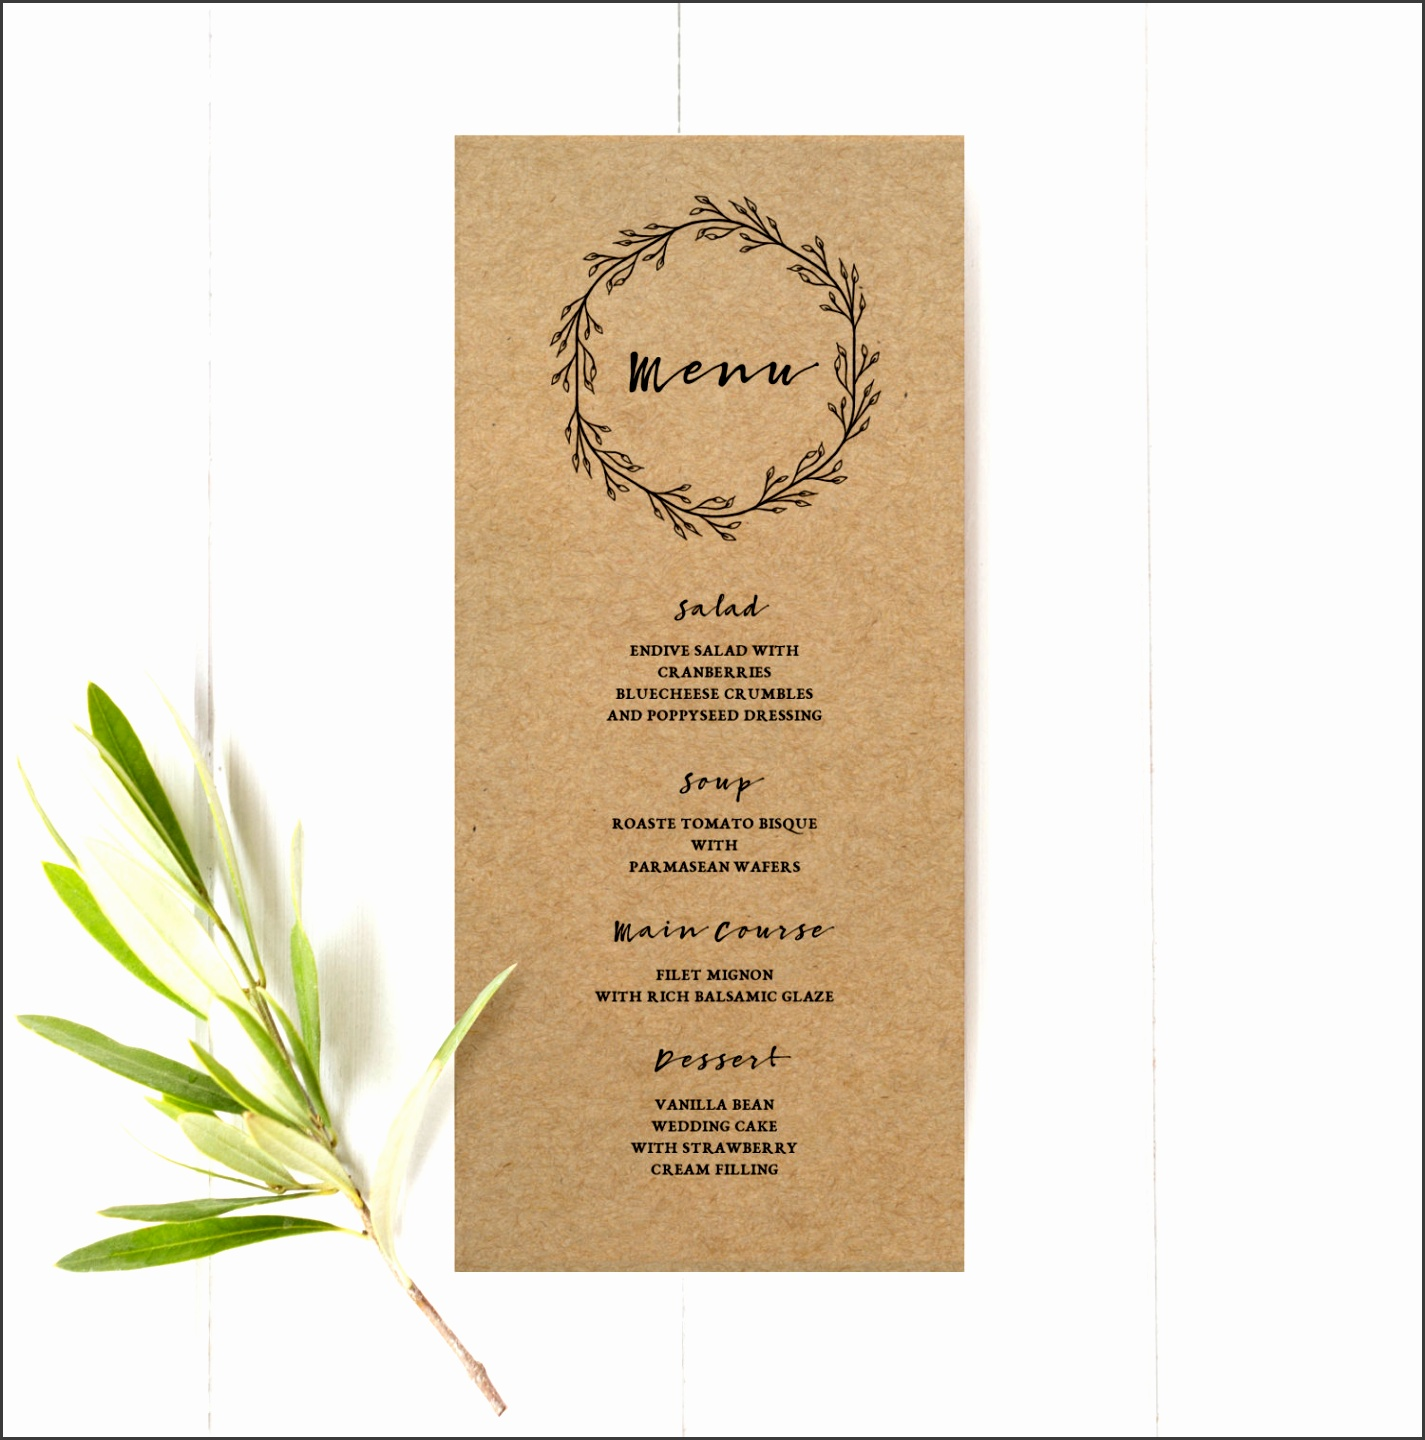 Printable Wedding Menu Template Rustic Kraft Menu Card Kraft Paper Rustic Wreath Black and White Leaves Simple Minimal